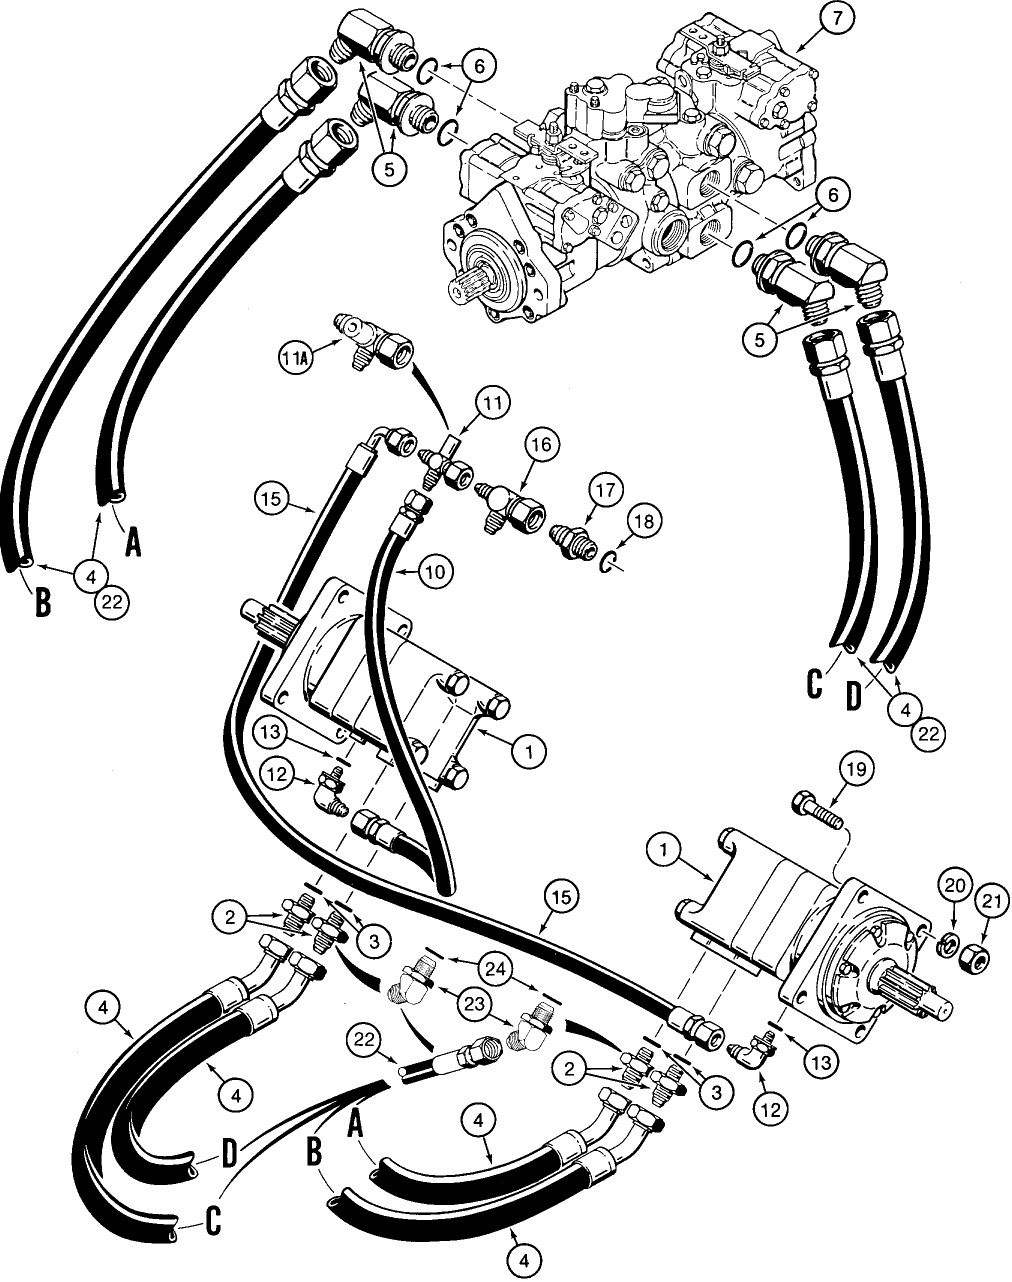 wiring diagram for 1998 1845c case case 70xt wiring